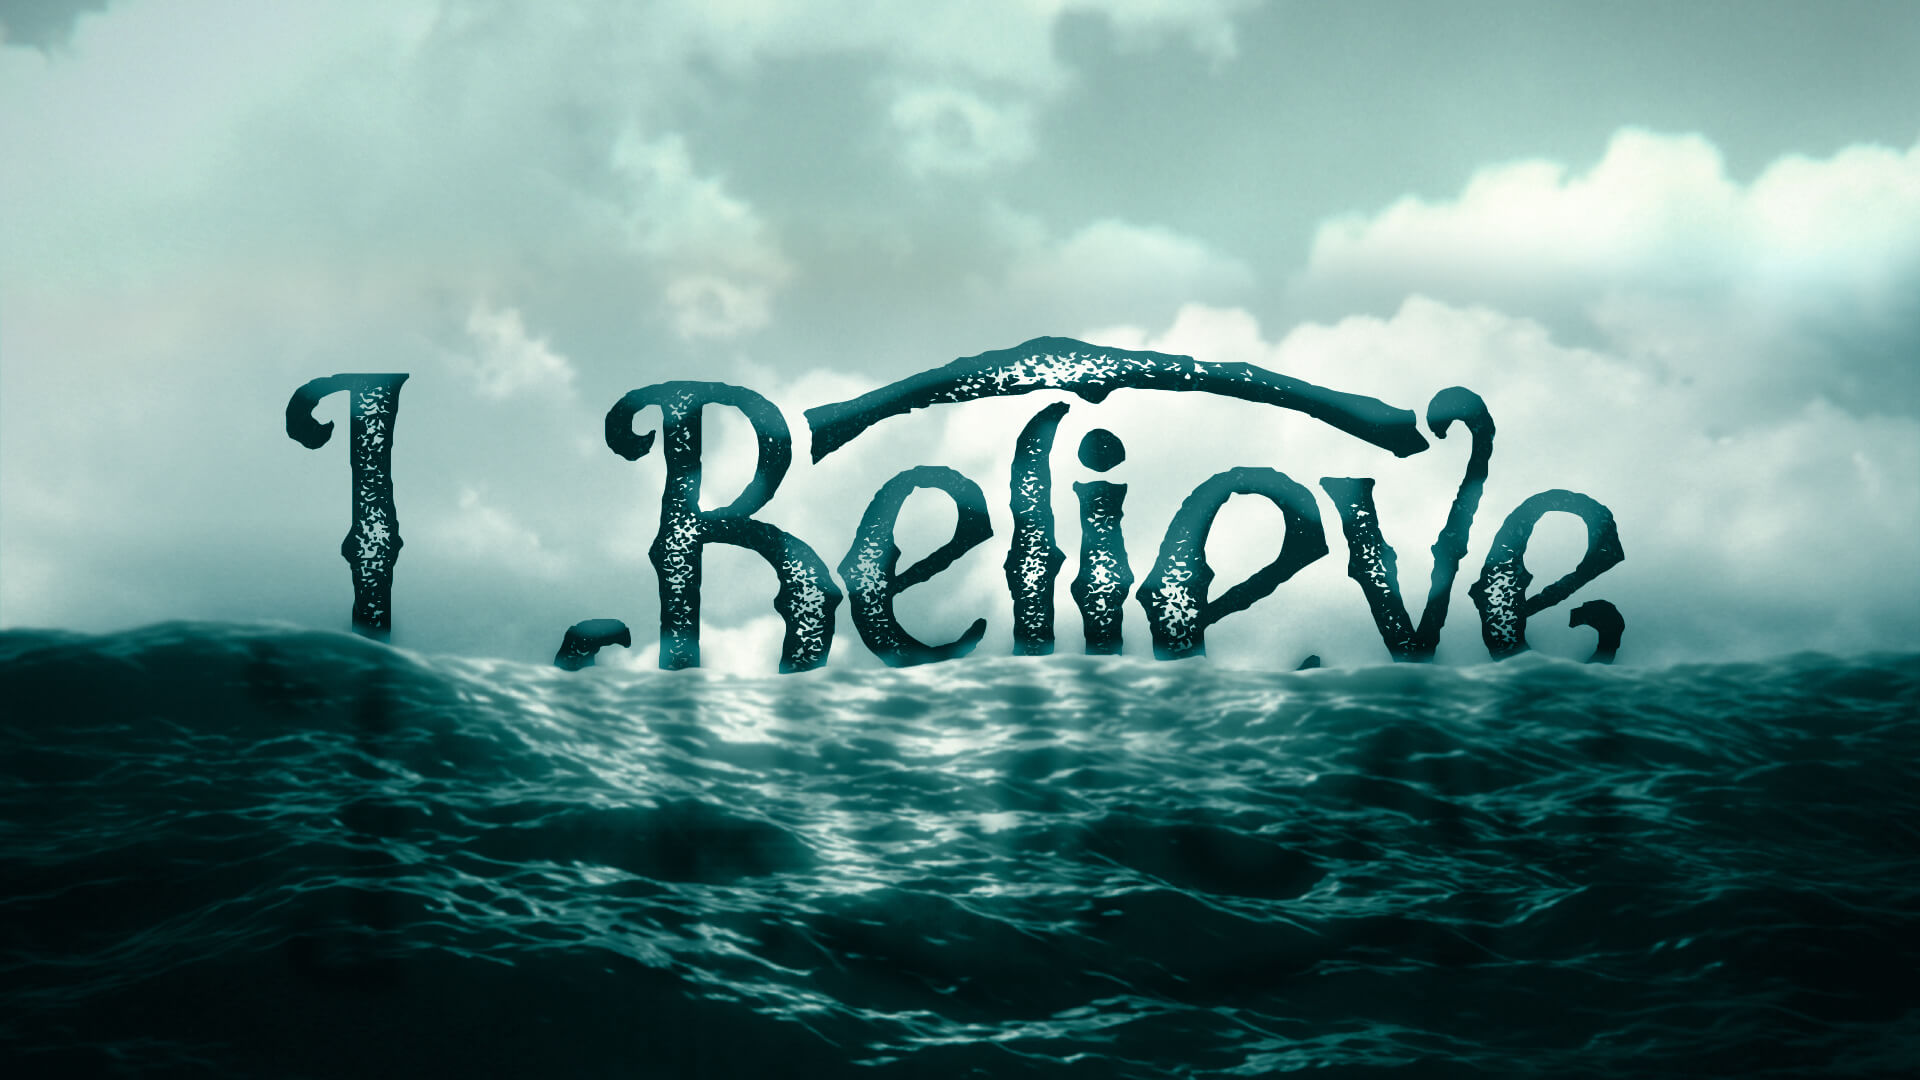 IBelieve_1920x1080_Web